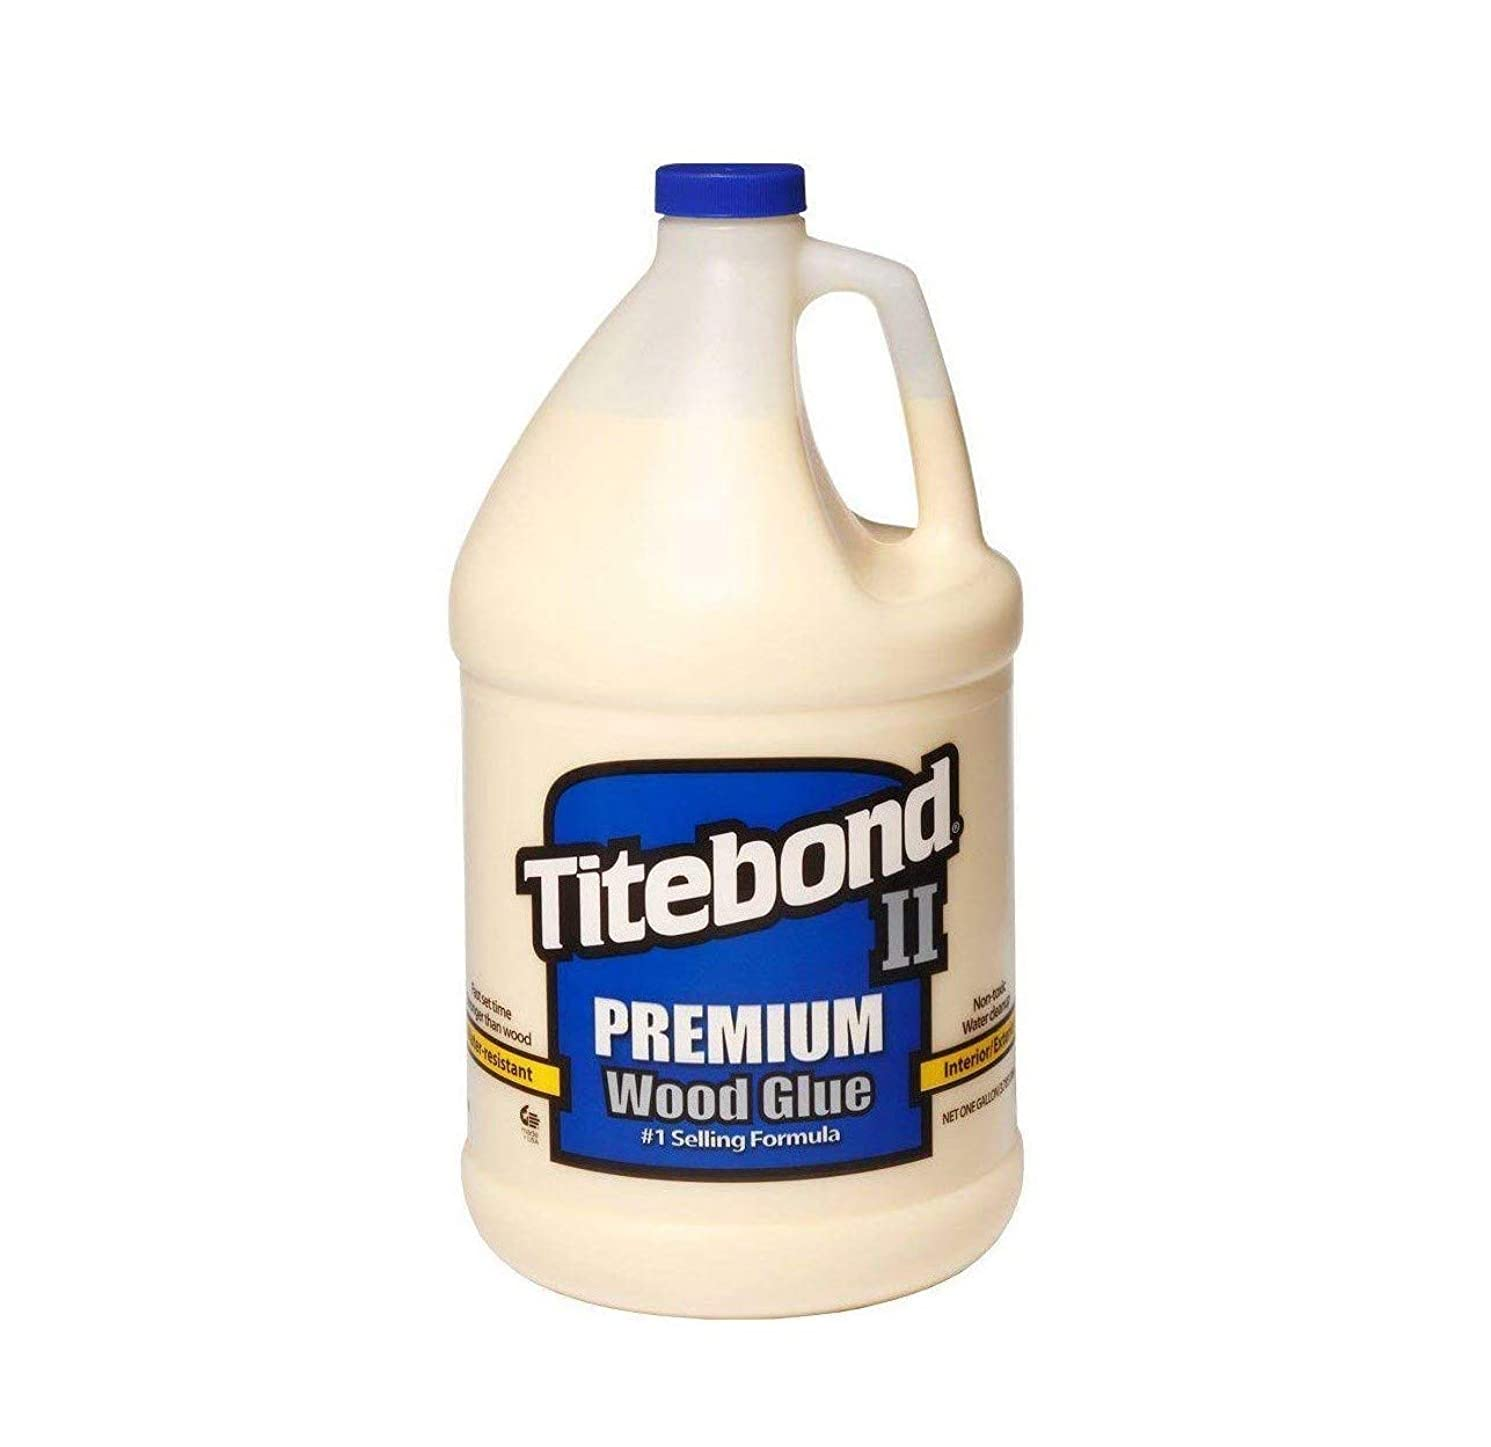 Titebond Franklin International 5005 II Premium Wood Glue, 1 Gal kv187266345737